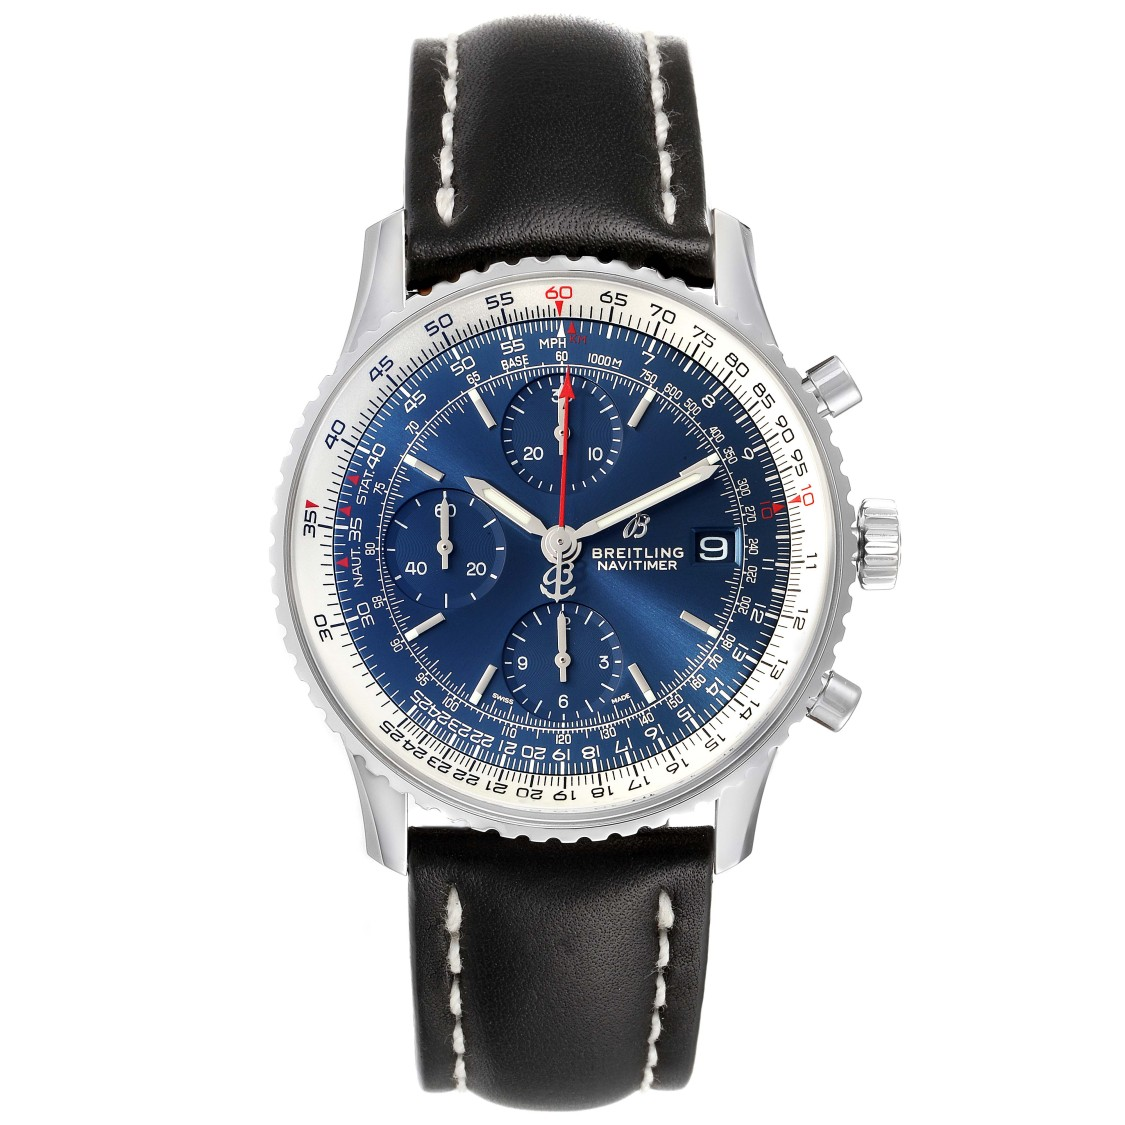 BREITLING NAVITIMER HERITAGE BLUE DIAL STEEL MENS WATCH A13324 BOX PAPERS